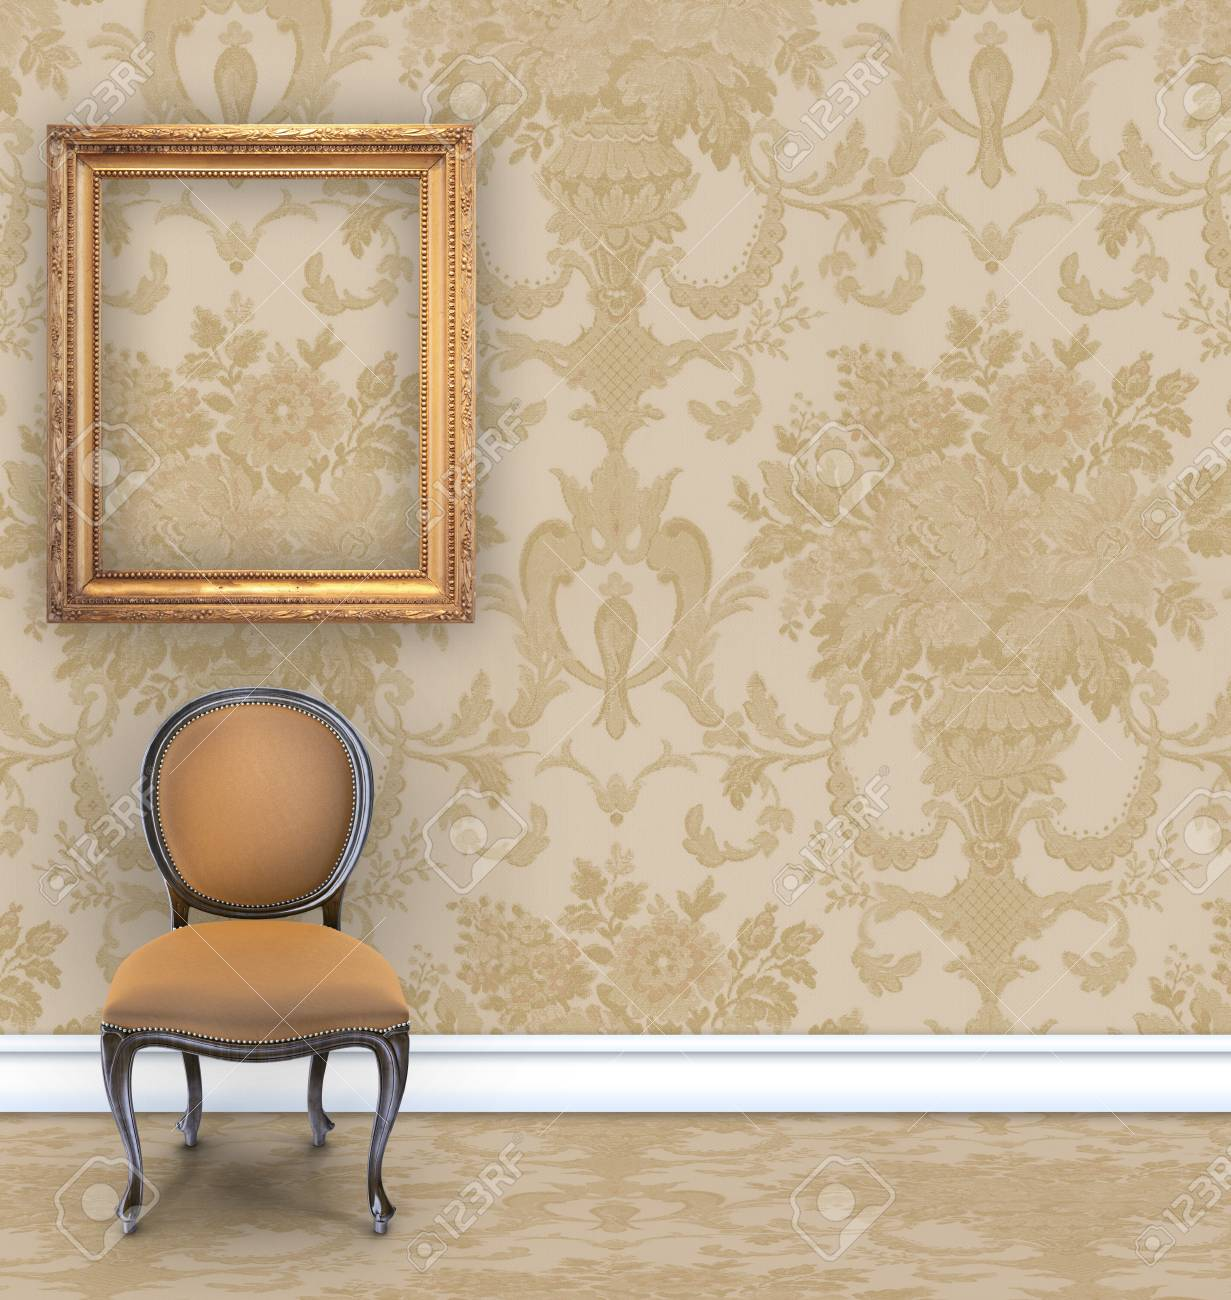 Damask Chair Room With Tan Damask Wallpaper A Velvet Chair And An Empty